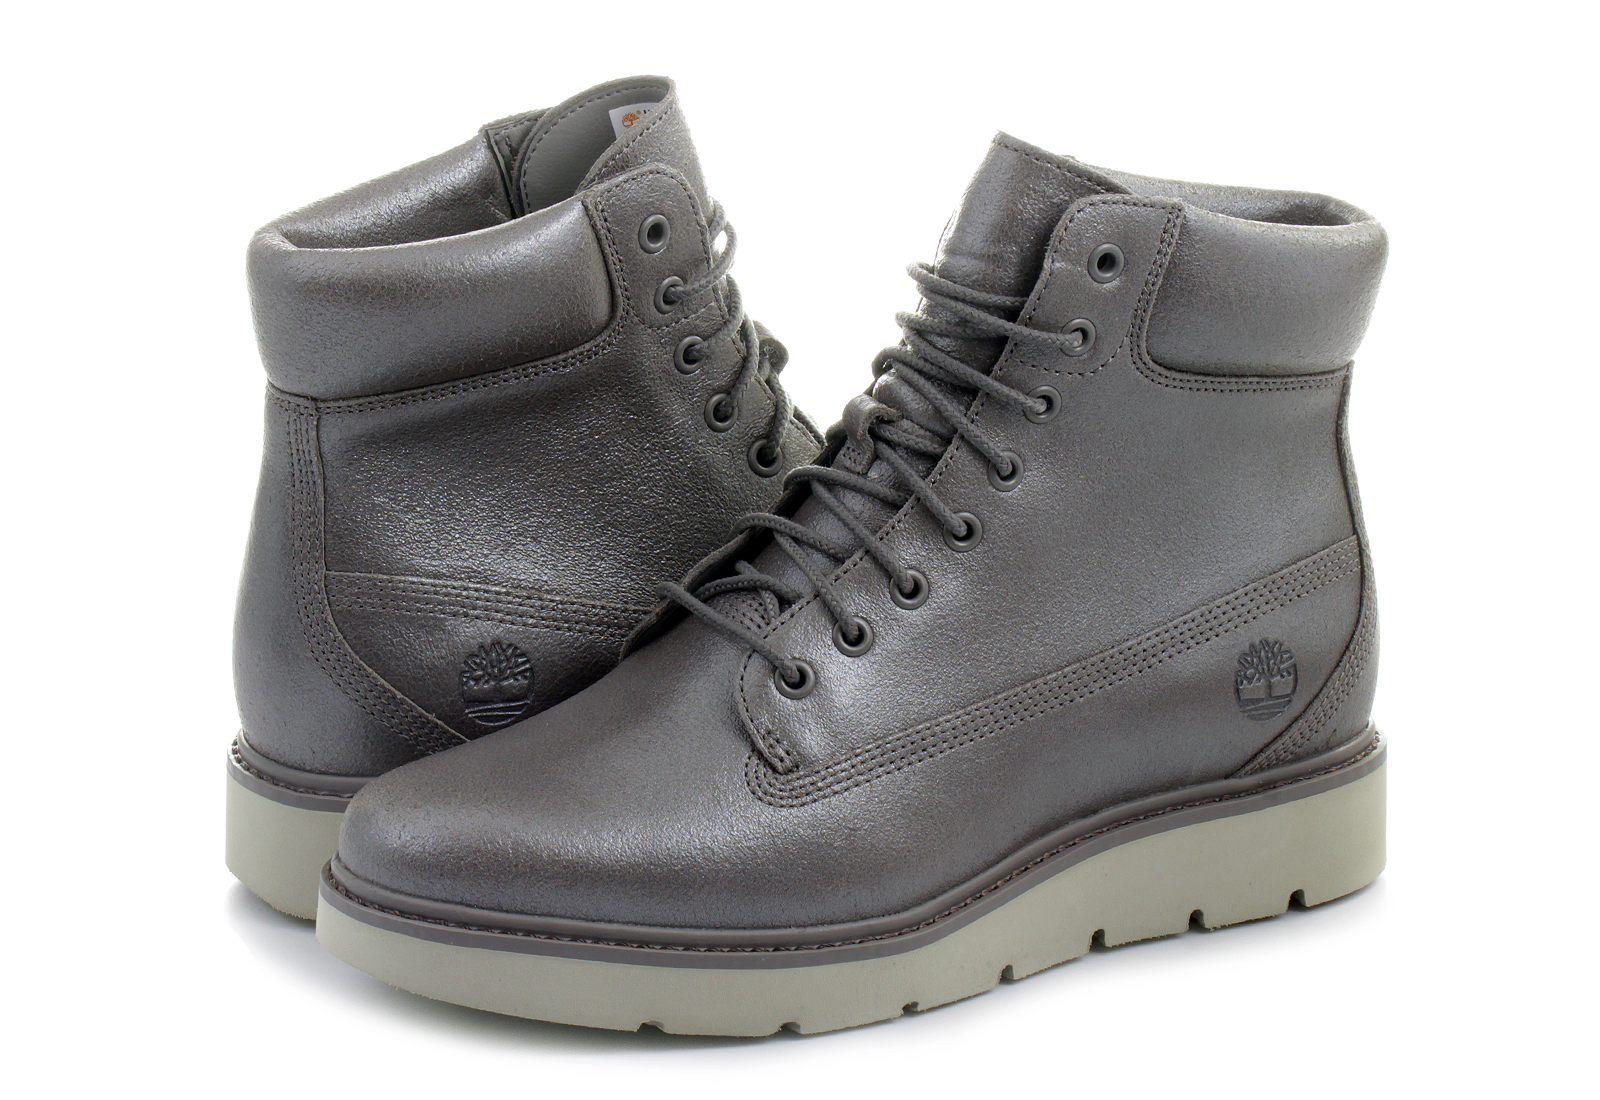 Timberland Topánky - Kenniston 6in Lace - a1irn-gry - Tenisky ... 7d72f6f9902